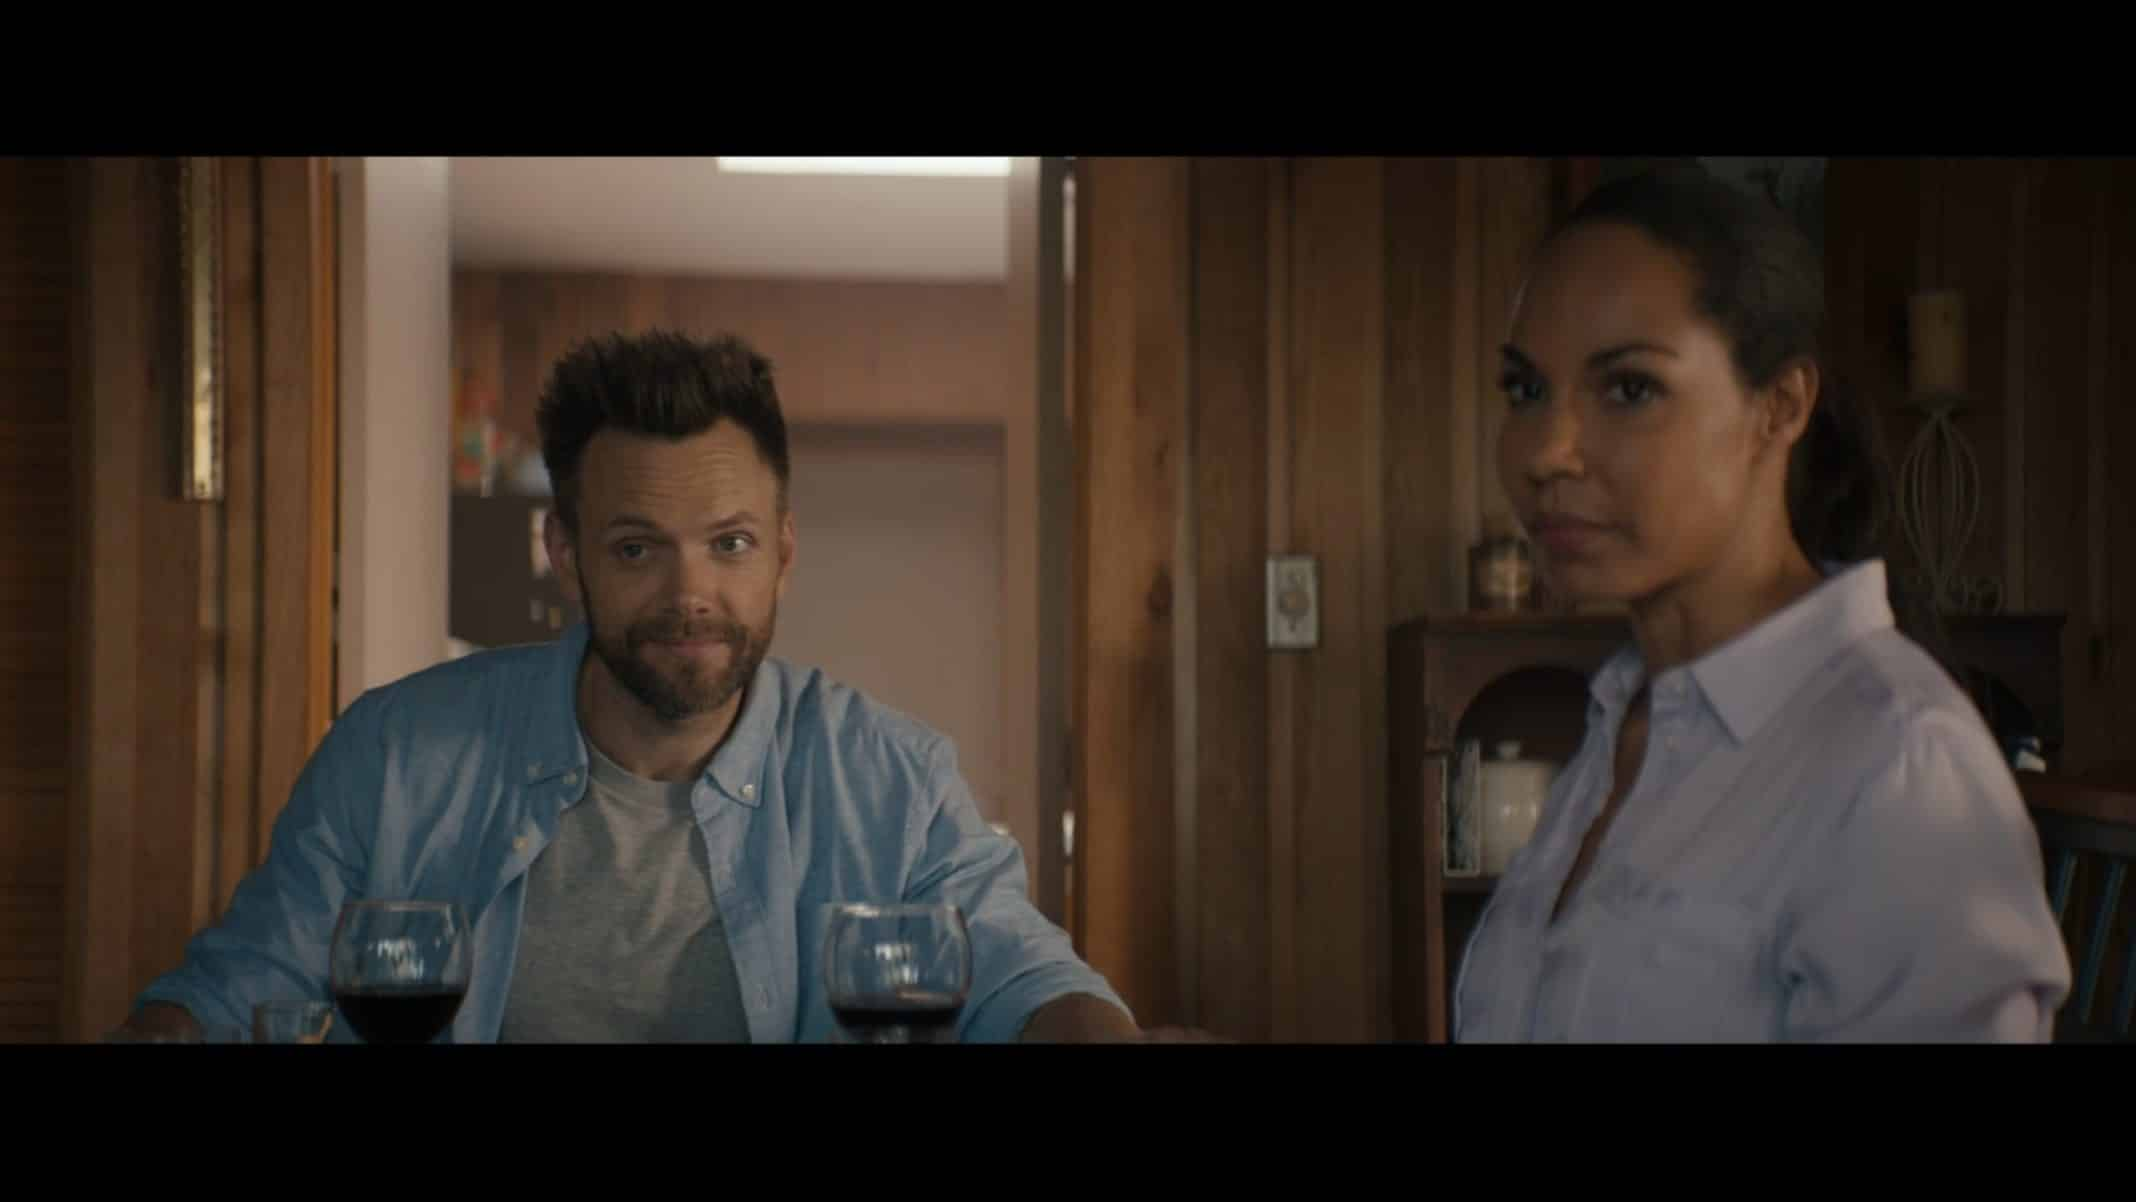 Jeff (Joel McHale) and Kayla (Amanda Brugel) looking towards Becky while they have dinner.